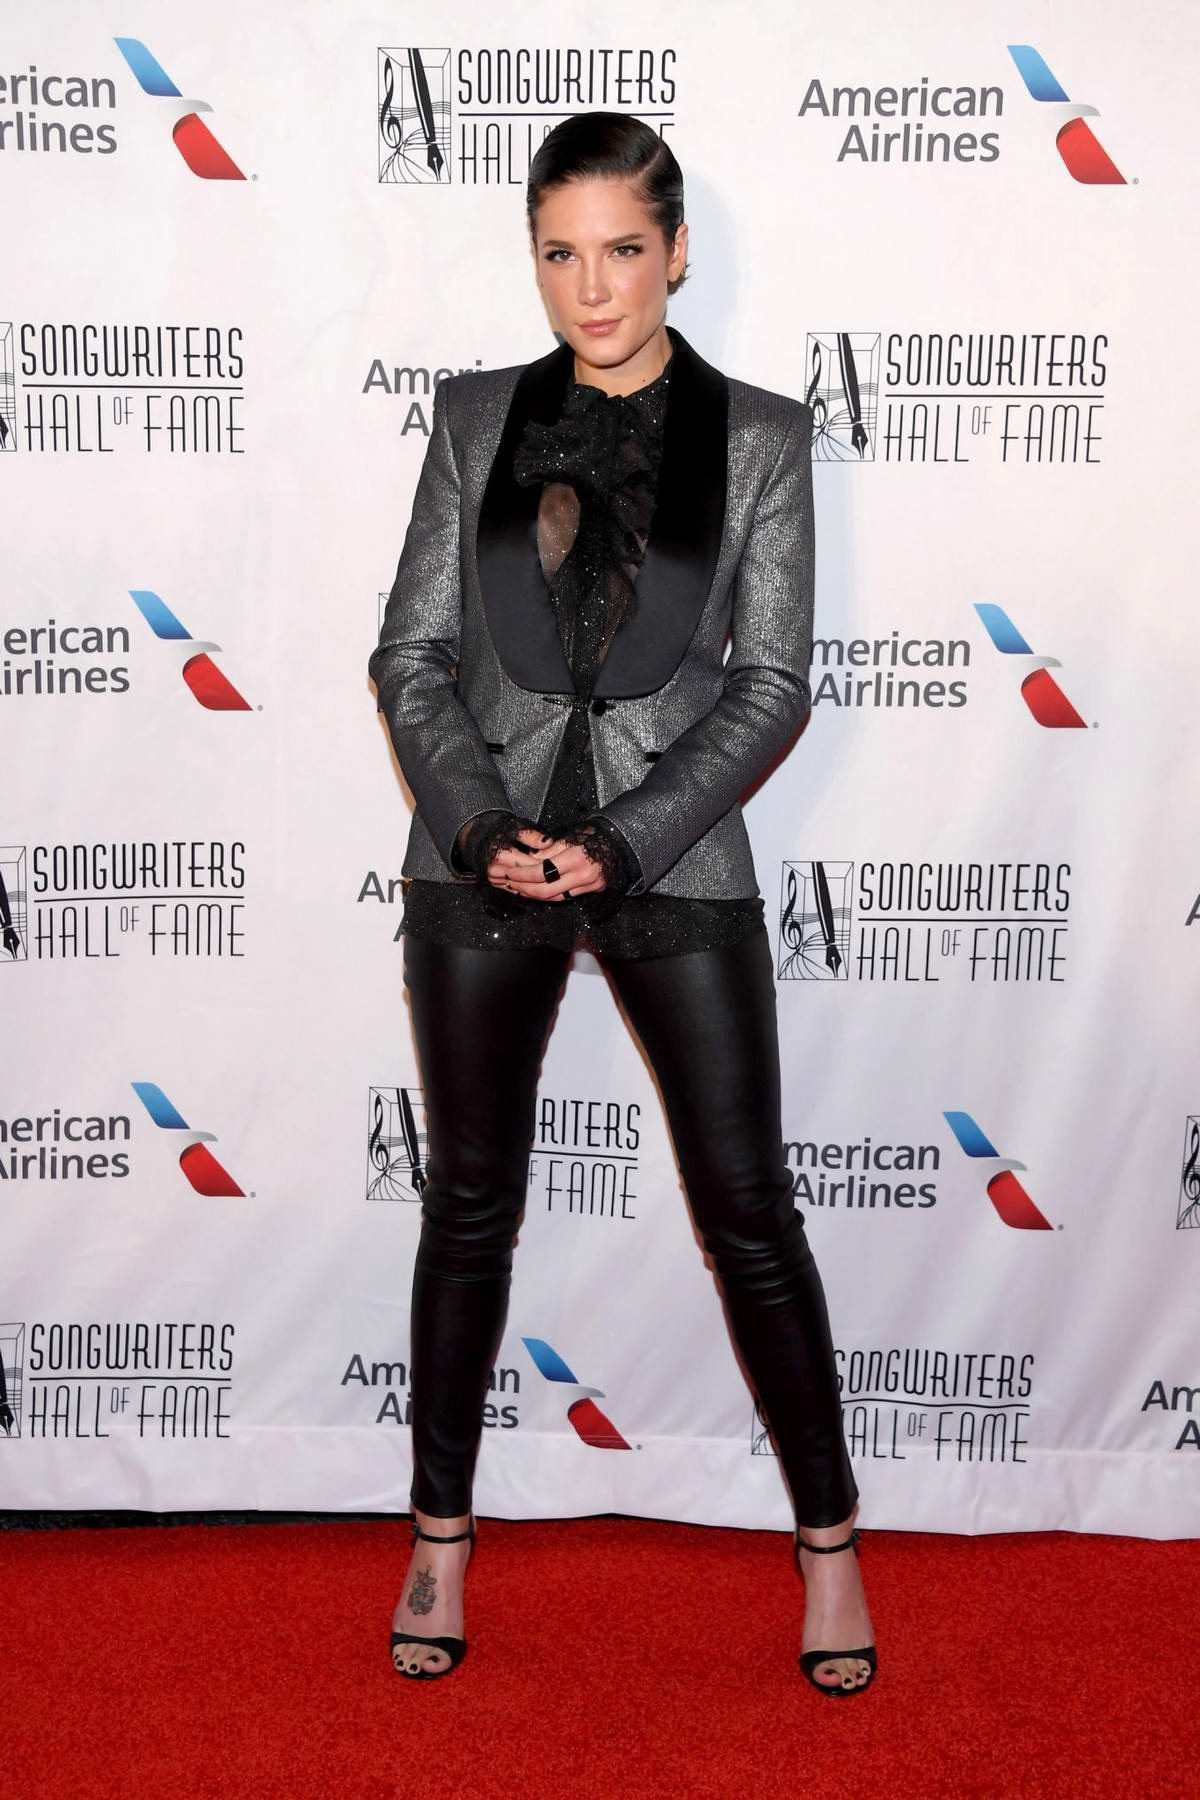 Halsey attends the 2019 Songwriters Hall Of Fame in New York City